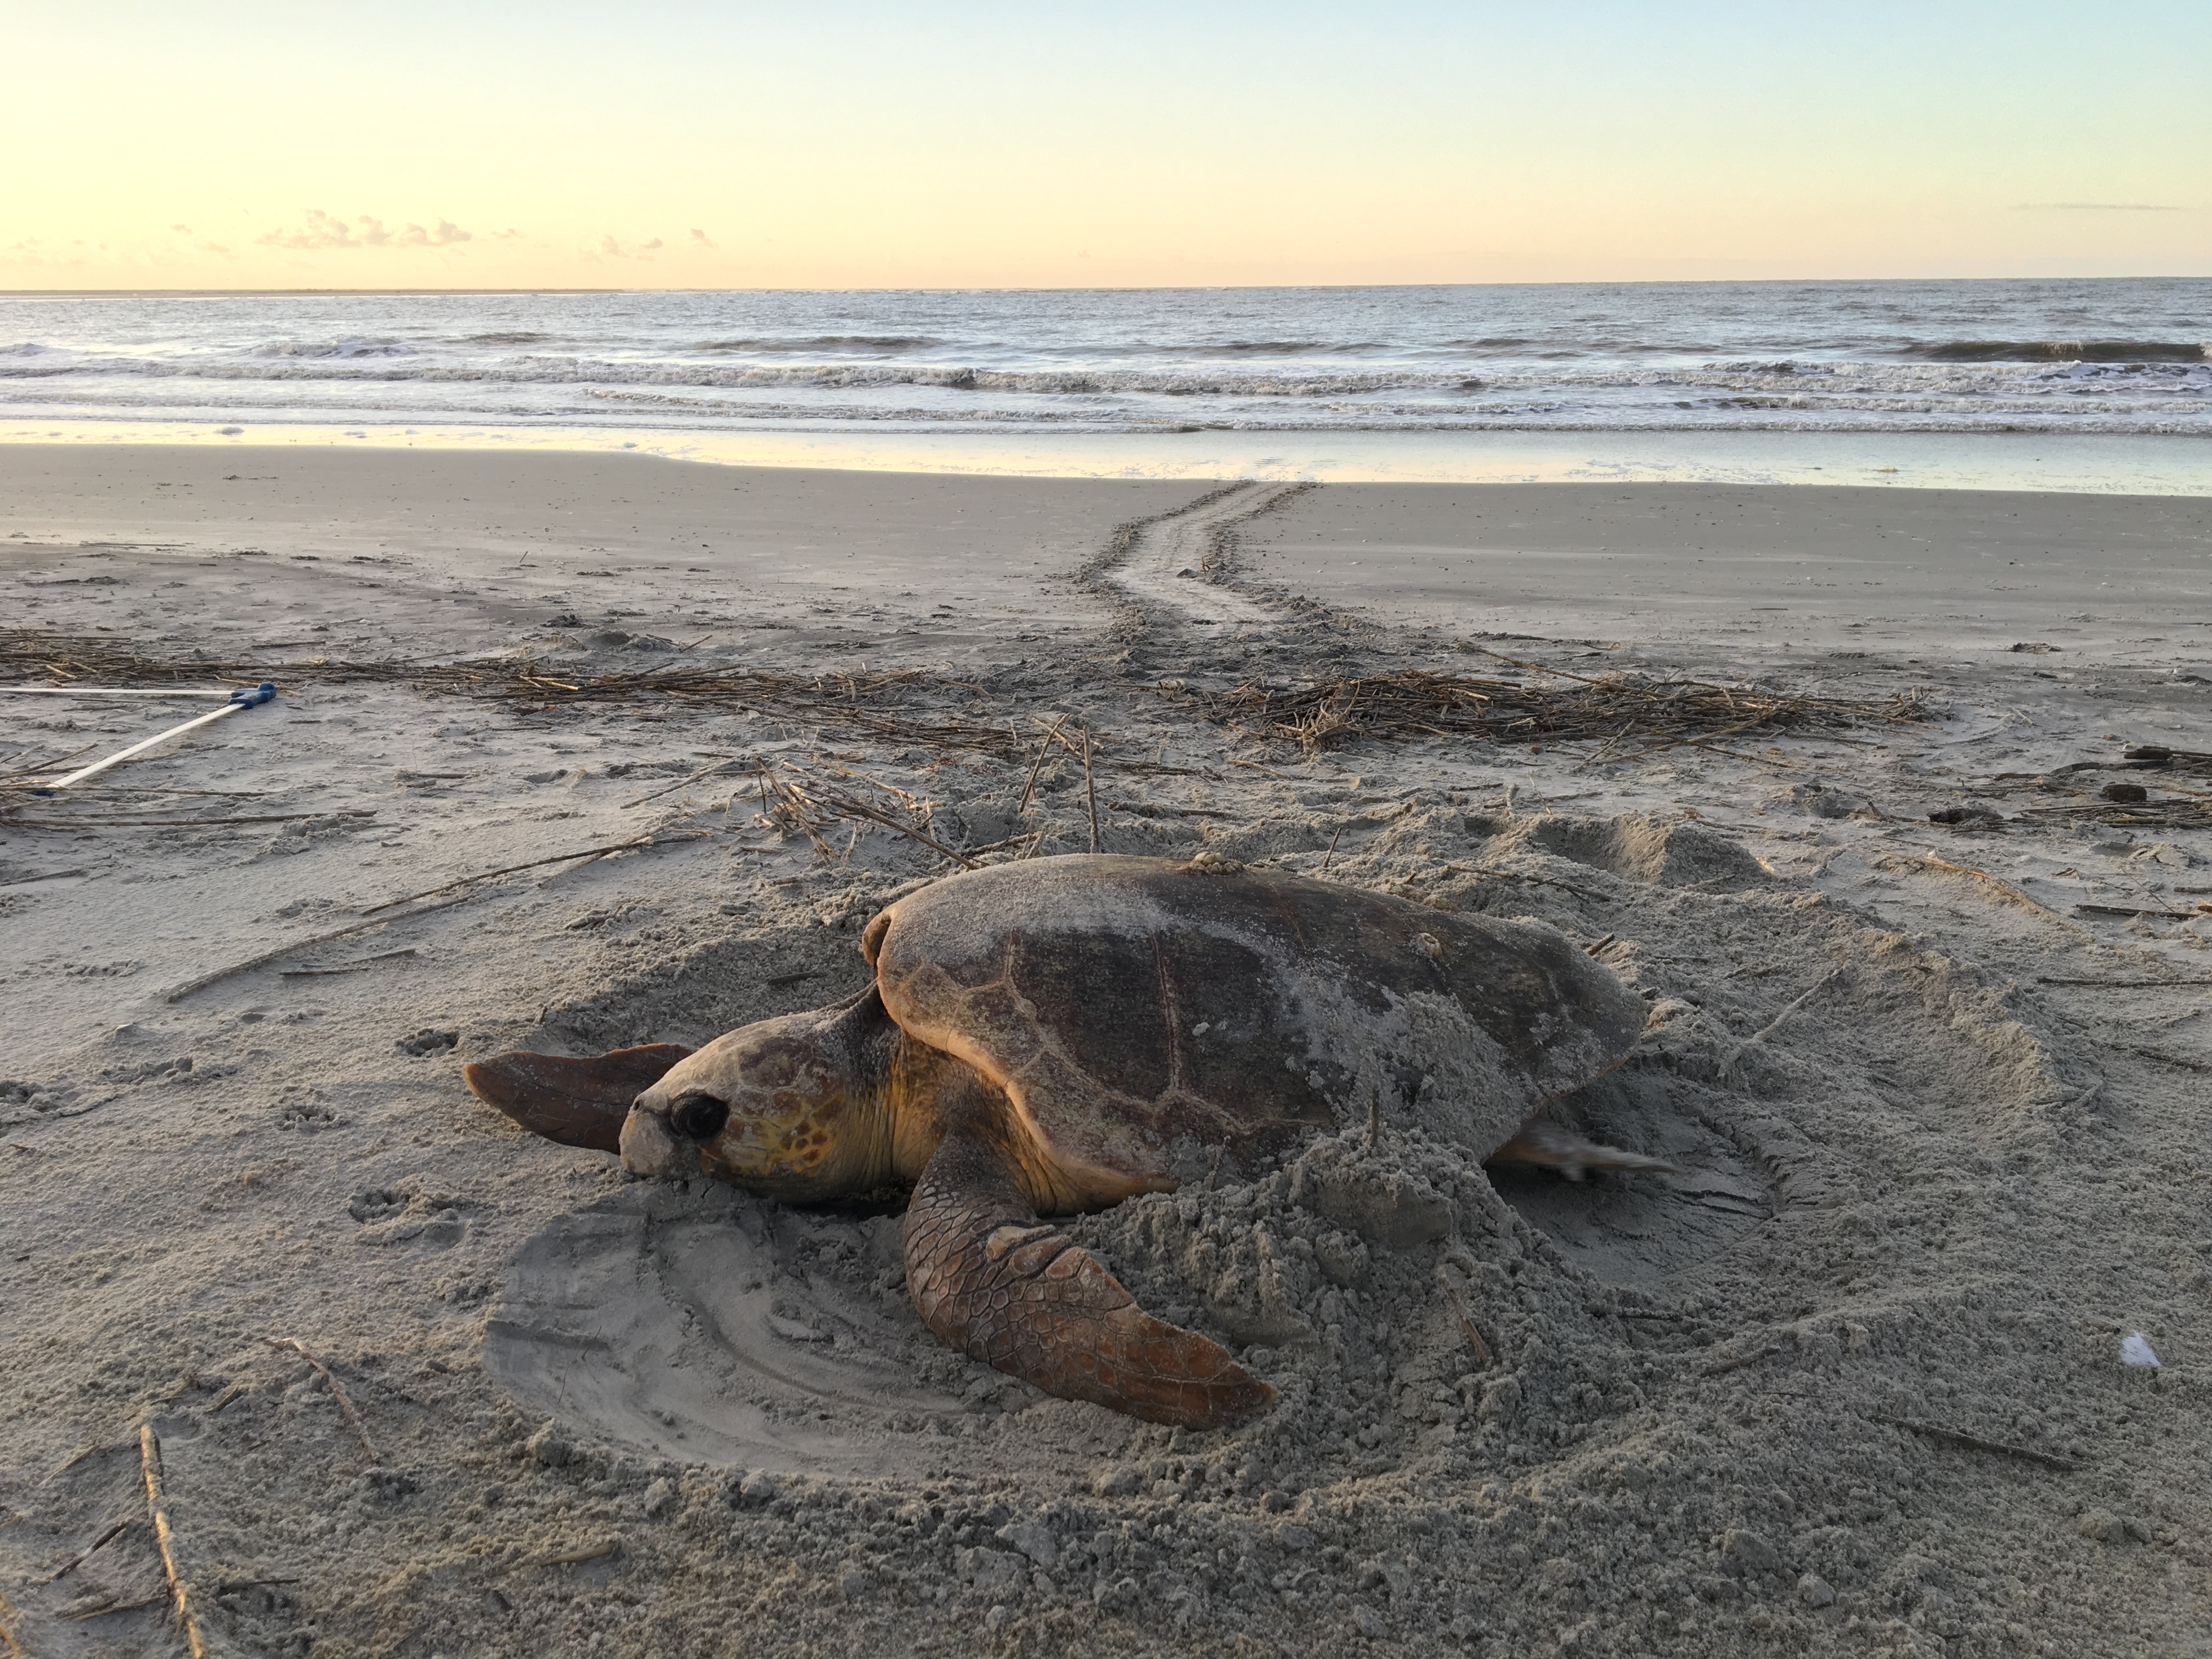 Turtles in the Trash: How microplastics are washing up where turtles breed